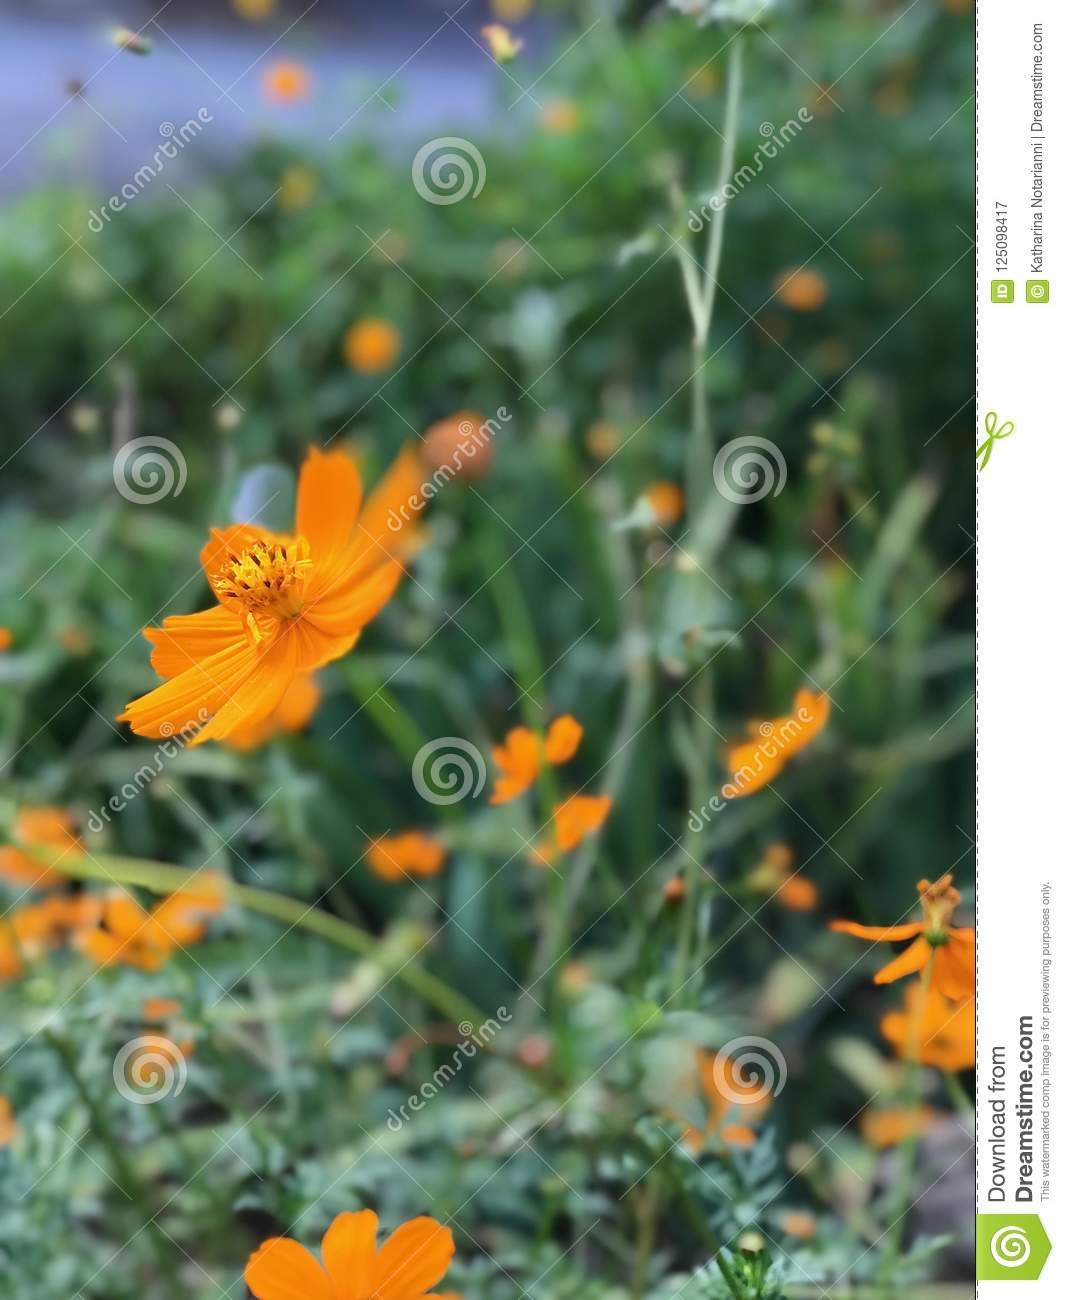 Orange Flower With Yellow And Black Bumble Bee Close Up Gathering